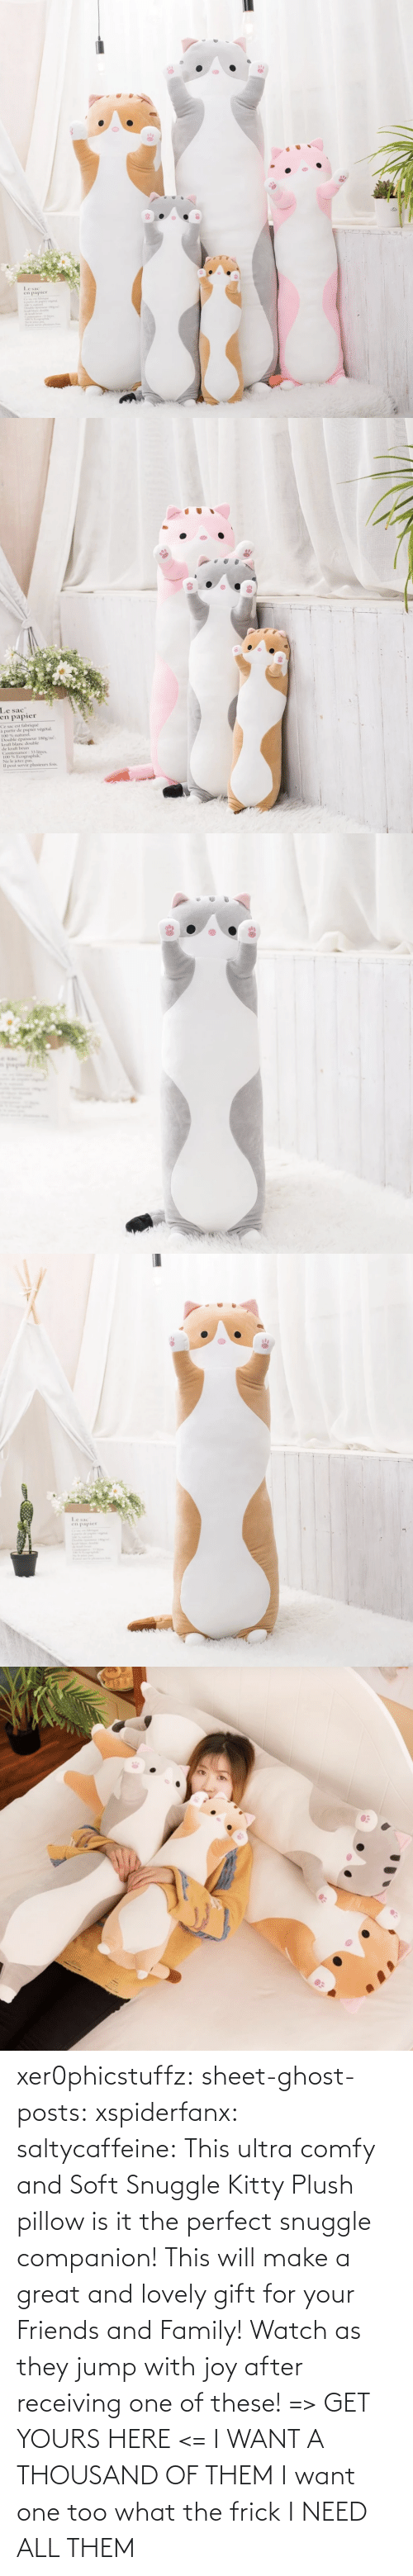 Family, Frick, and Friends: xer0phicstuffz: sheet-ghost-posts:  xspiderfanx:  saltycaffeine:  This ultra comfy and Soft Snuggle Kitty Plush pillow is it the perfect snuggle companion! This will make a great and lovely gift for your Friends and Family! Watch as they jump with joy after receiving one of these! => GET YOURS HERE <=    I WANT A THOUSAND OF THEM  I want one too what the frick    I NEED ALL THEM